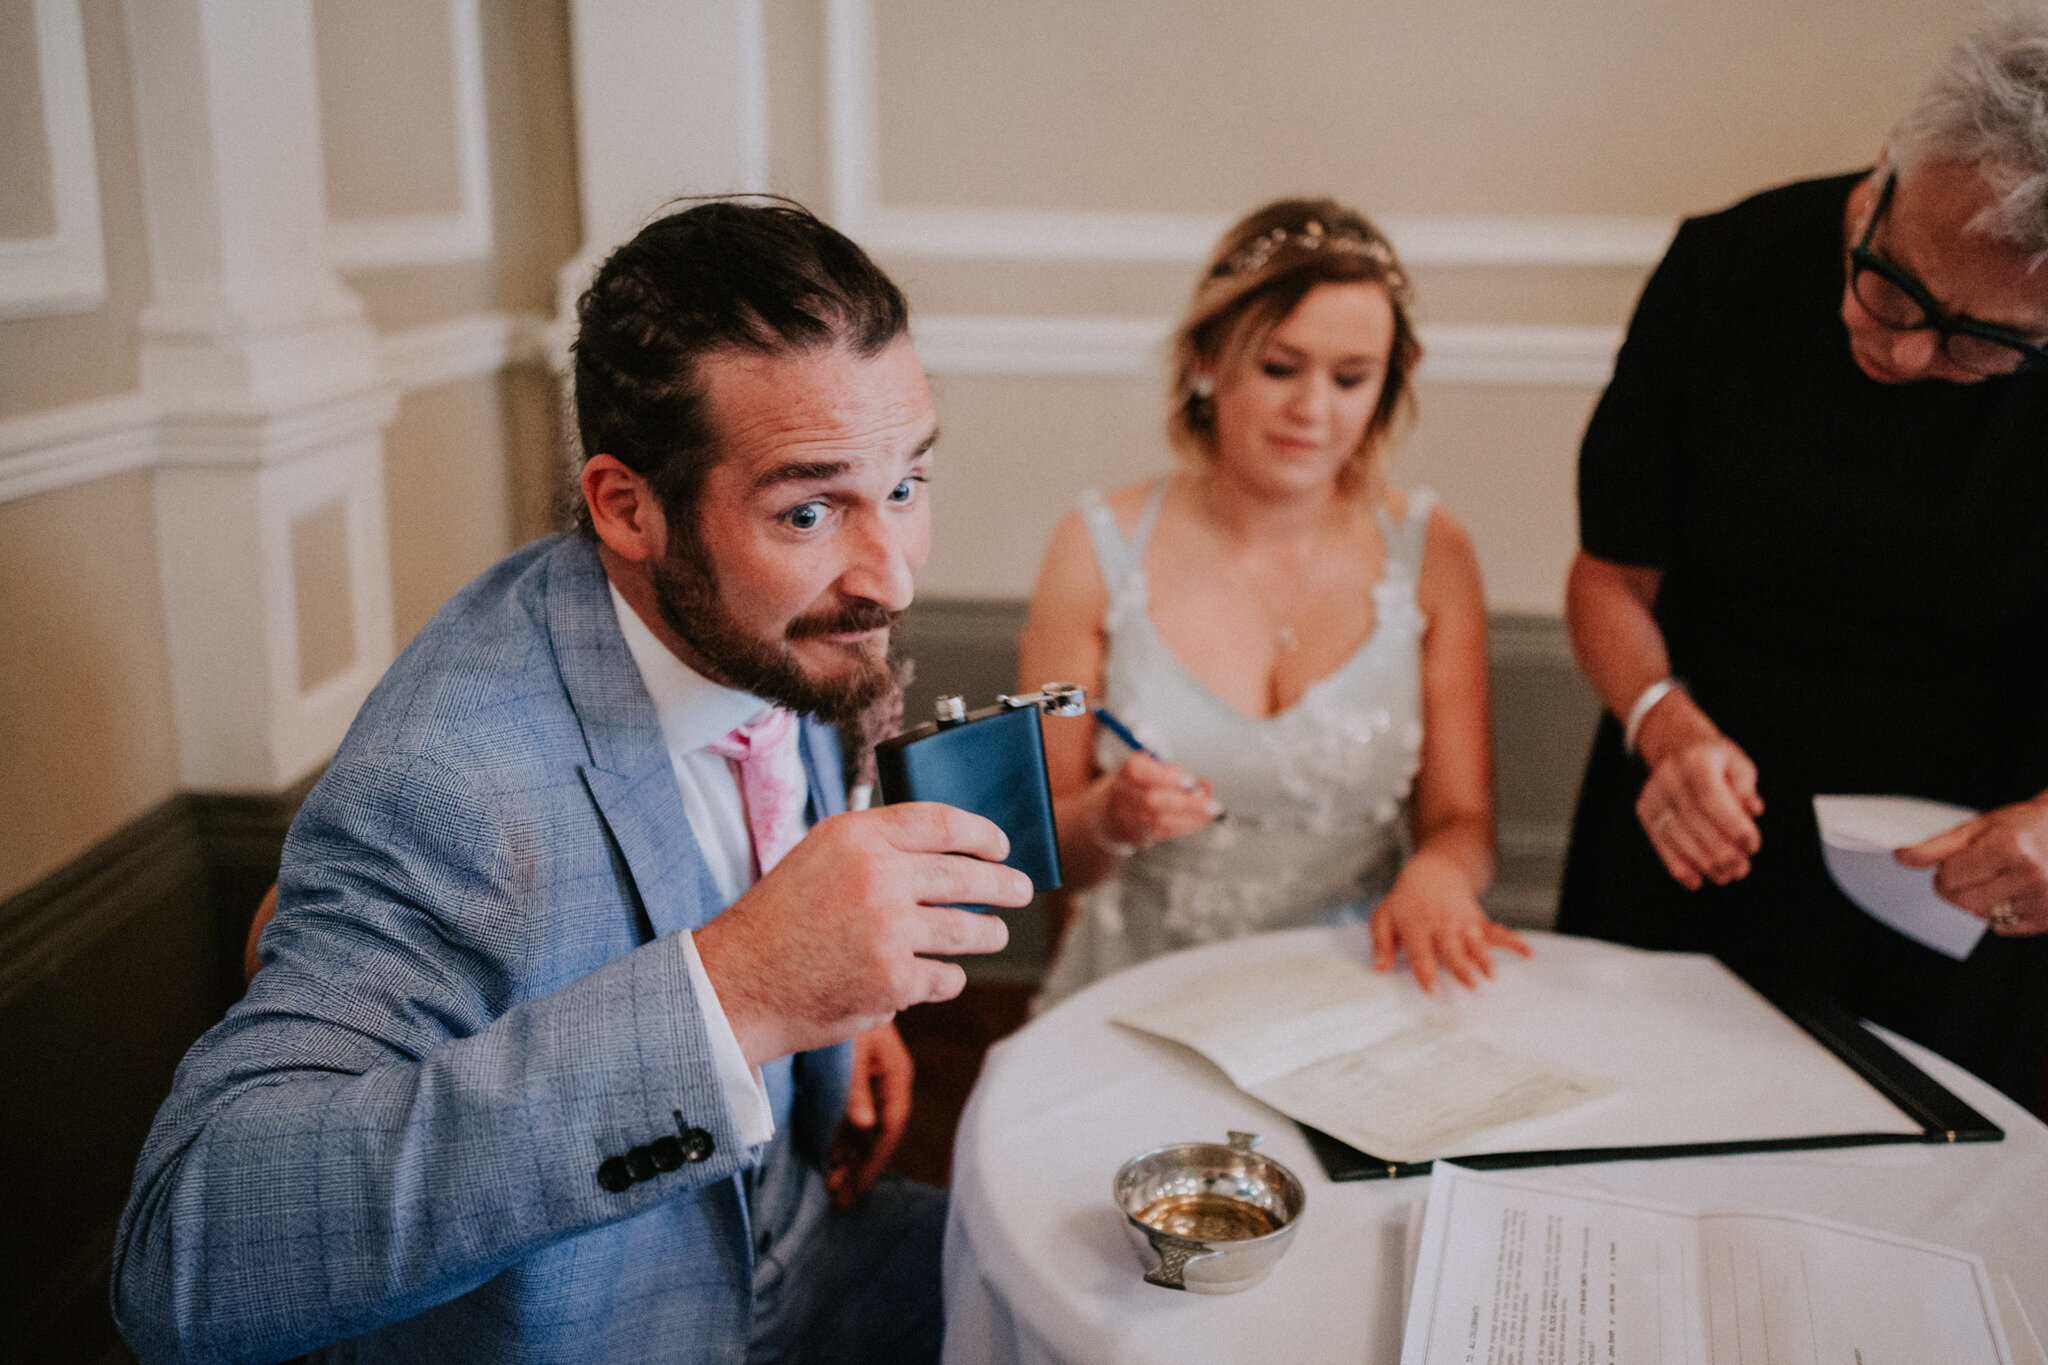 The groom is sipping whisky during the signing register